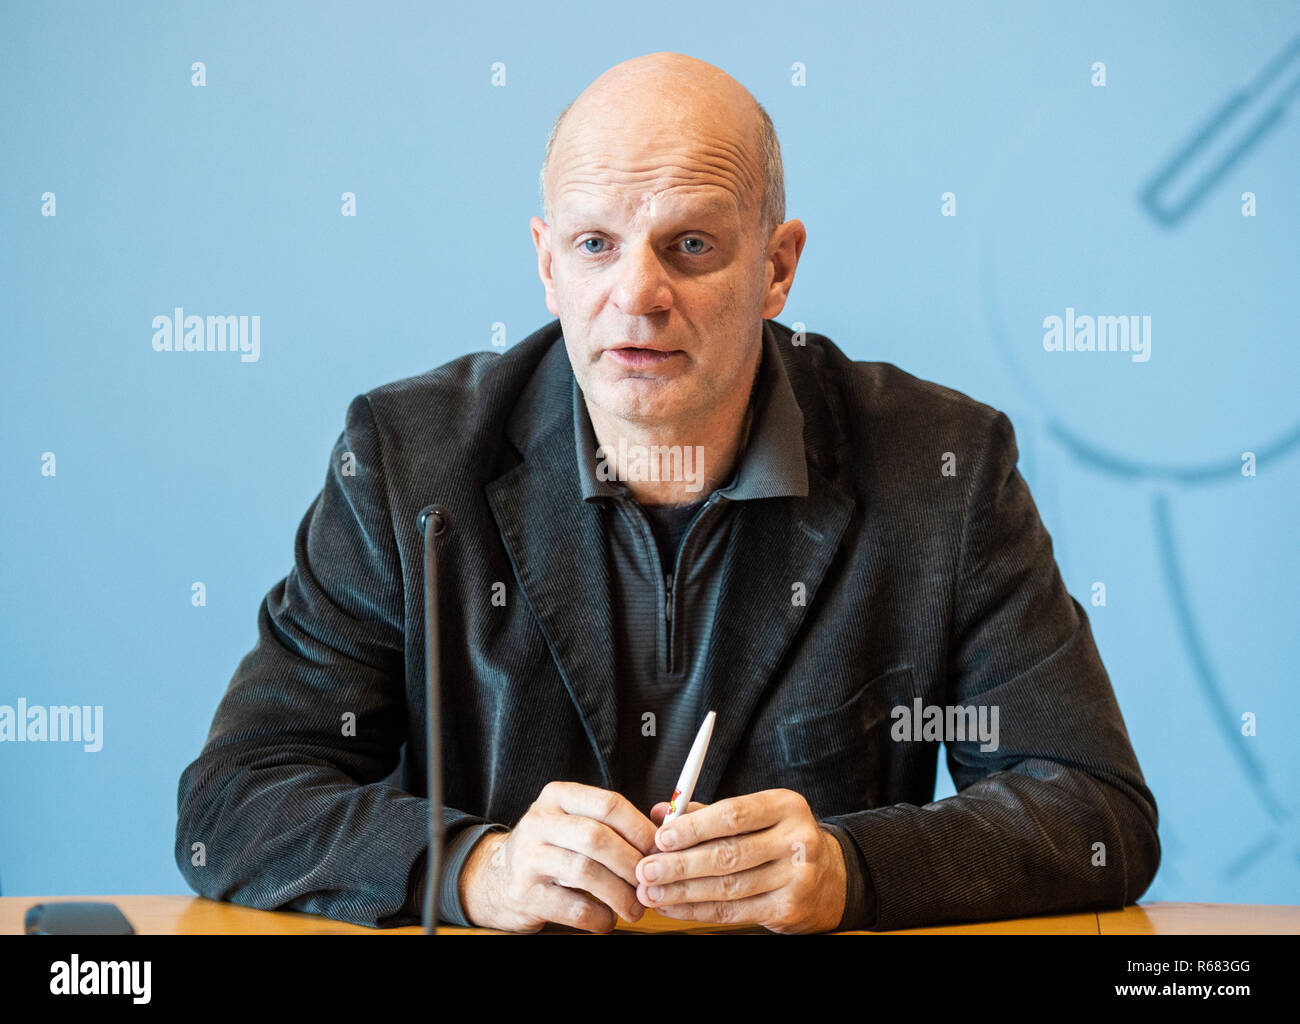 Düsseldorf, Germany. 4th Dec 2018. Stefan Zimkeit (SPD), member of North Rhine-Westphalia's state parliament, will speak at an SPD press conference on the 2019 budget. Photo: Christophe Gateau/dpa Credit: dpa picture alliance/Alamy Live News - Stock Image